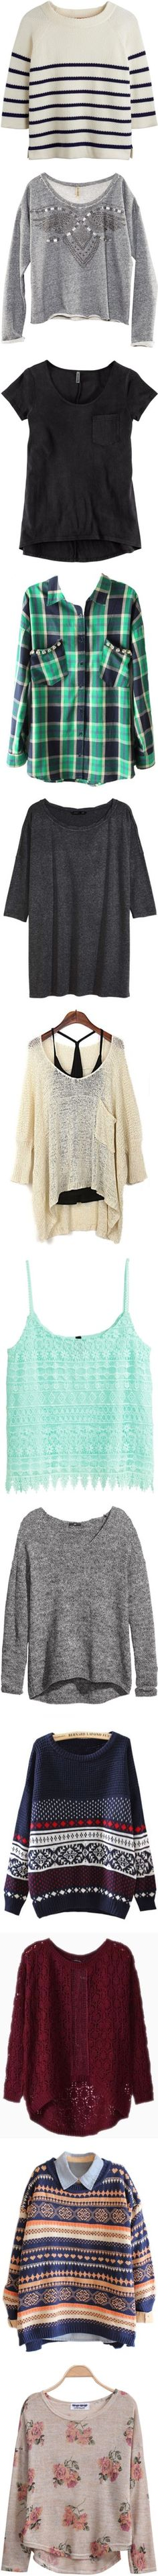 """""""blouses 6"""" by lindacsanfelice on Polyvore"""